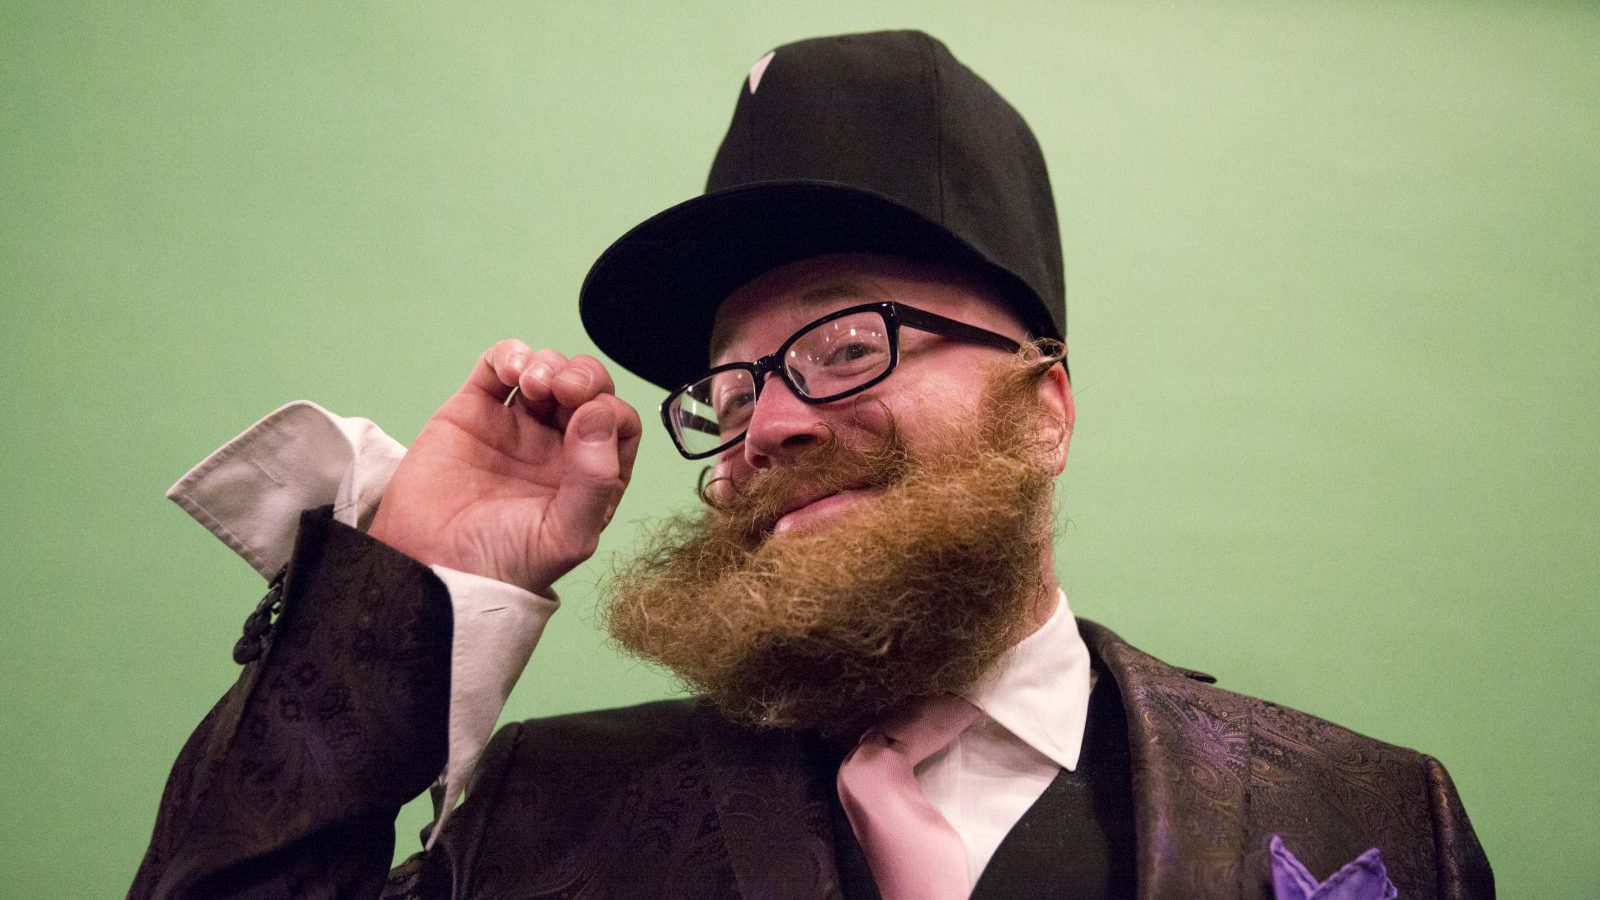 Adam Falandys from Massachusetts poses for a photograph at the 2015 Just For Men National Beard & Moustache Championships at the Kings Theater in the Brooklyn borough of New York City, November 7, 2015. Hundreds of facial hair enthusiasts attended the event competing in 18 different categories.